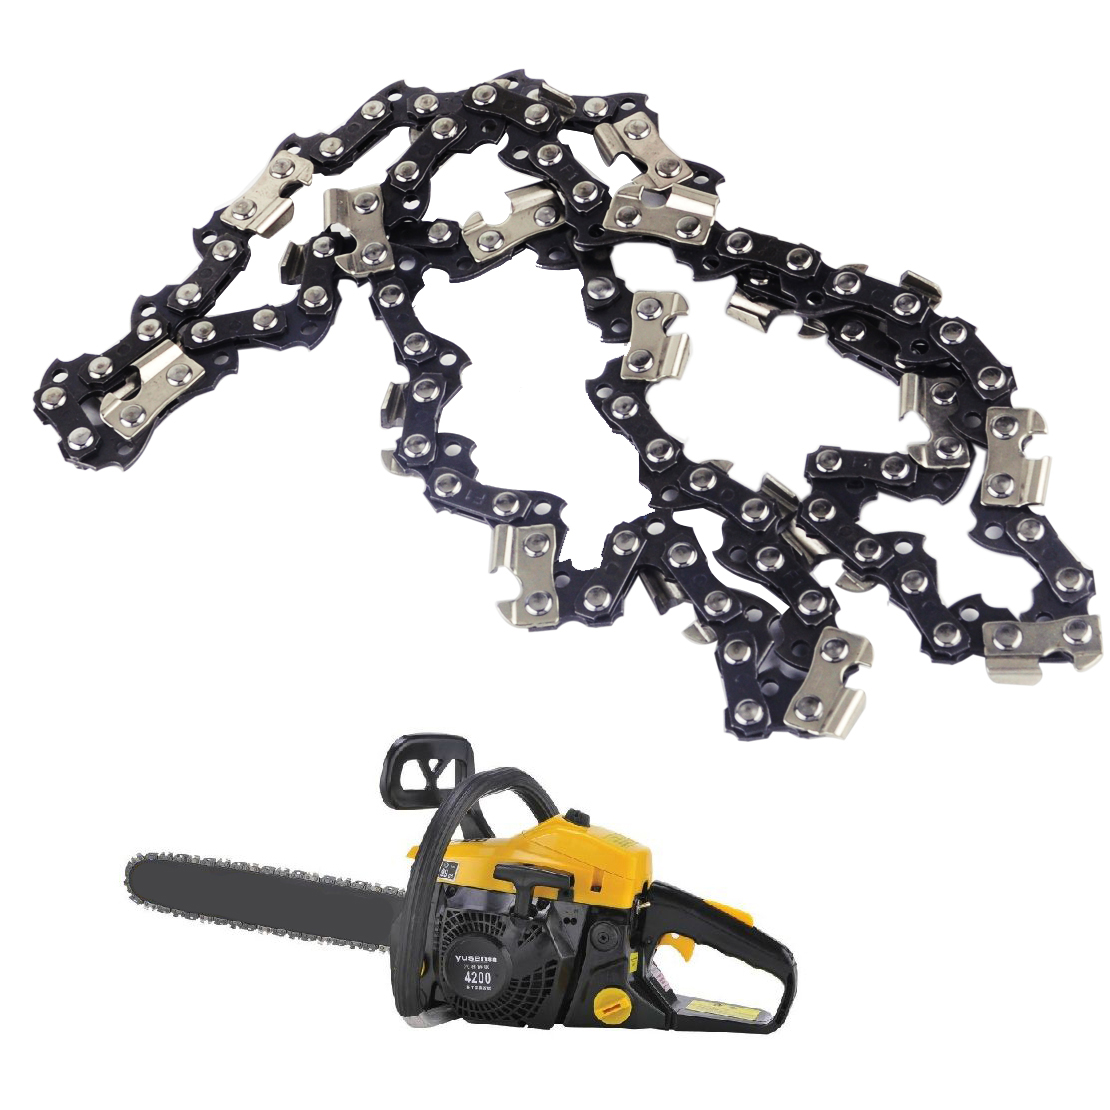 LETAOSK High Quality Chainsaw Saw Chain 3/8